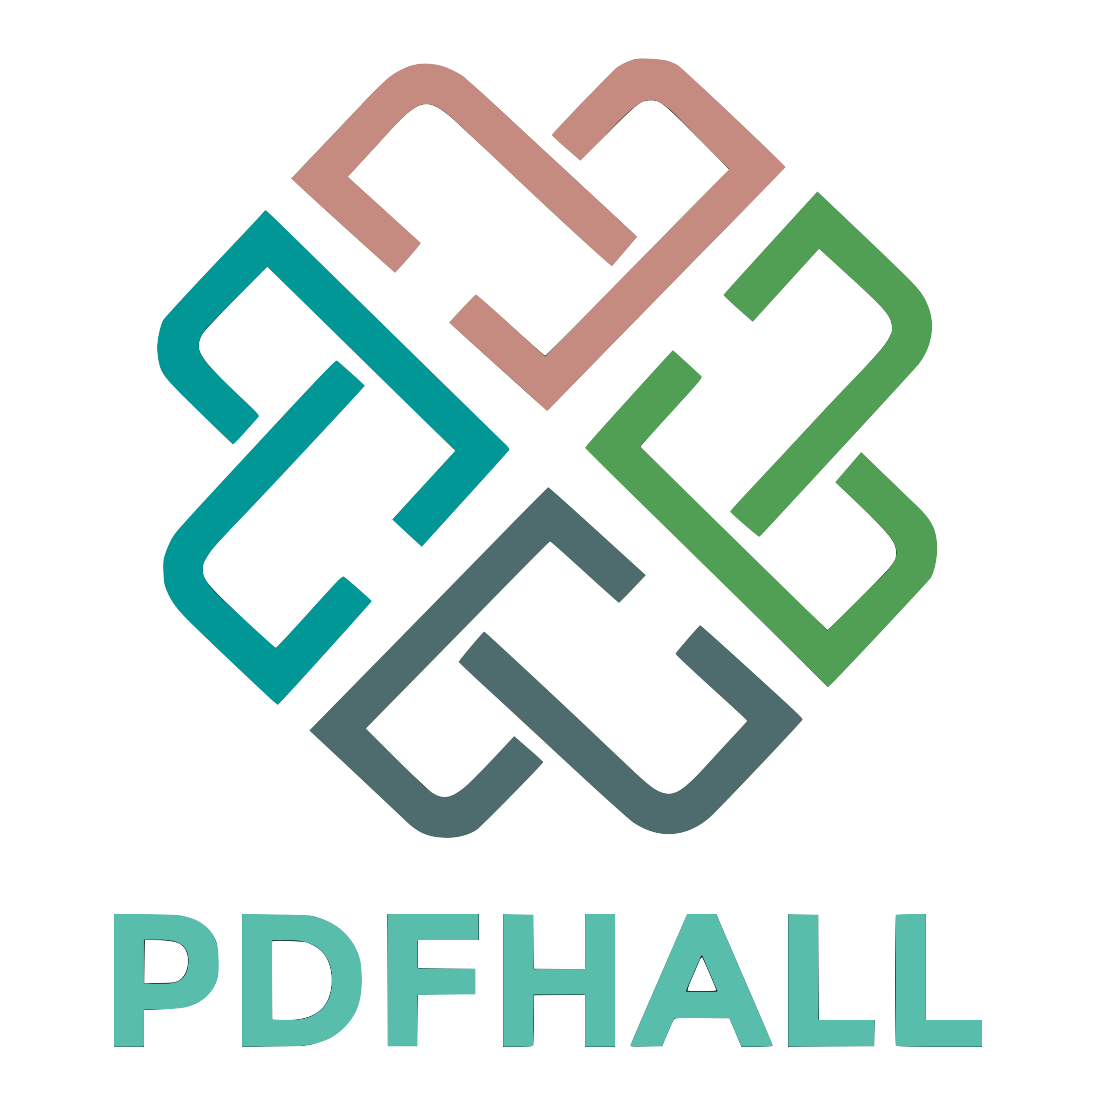 e74c0c50264 to download the pdf file - Interpreter Training Resources - PDFHALL.COM